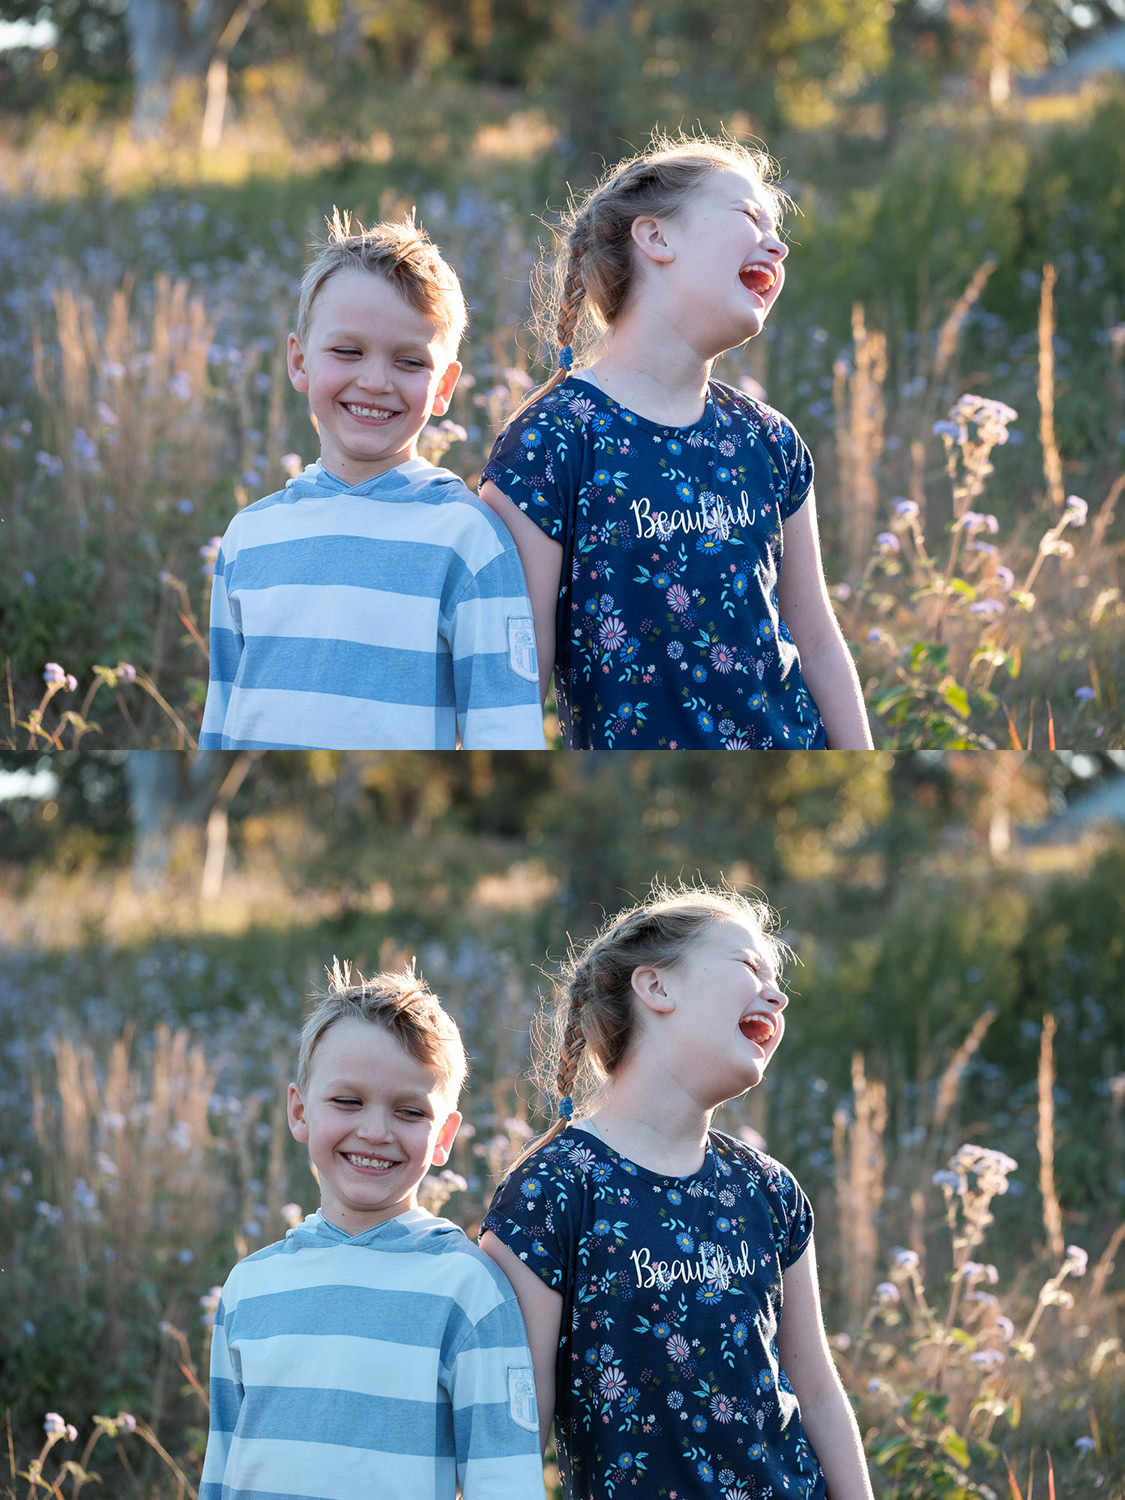 Image: Top: Kids in a filed RAW file. Bottom: Classic Chrome JPG.